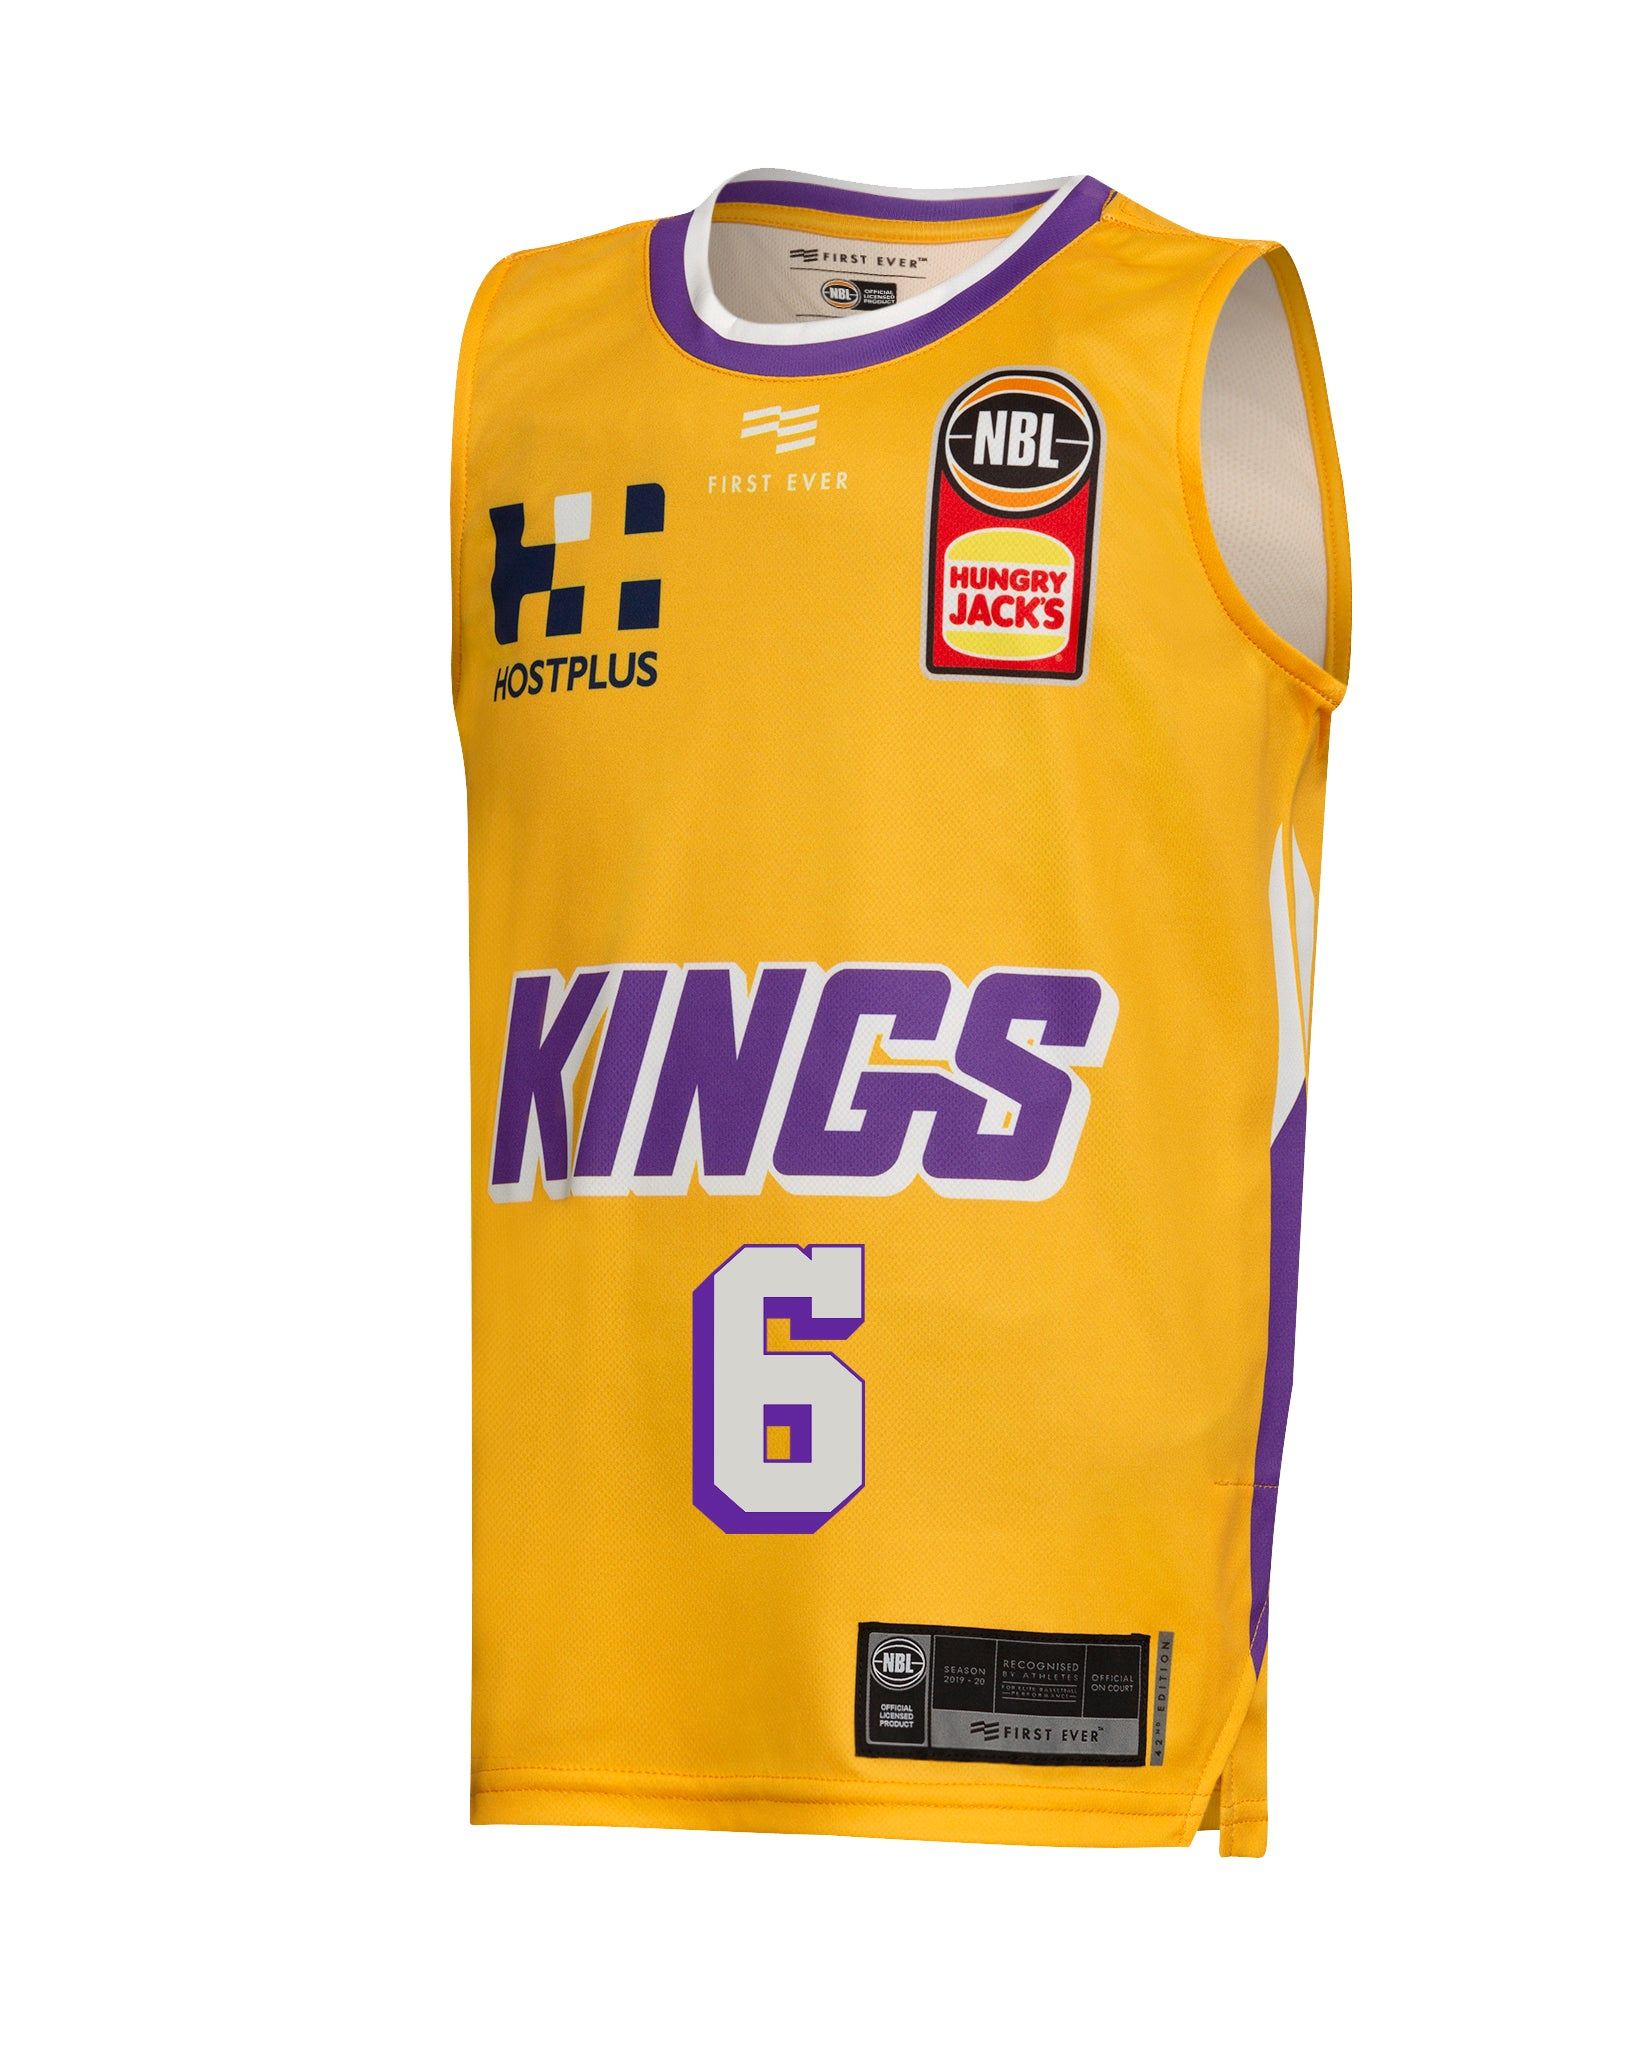 Sydney Kings 19/20 Youth Authentic Away Jersey - Andrew Bogut